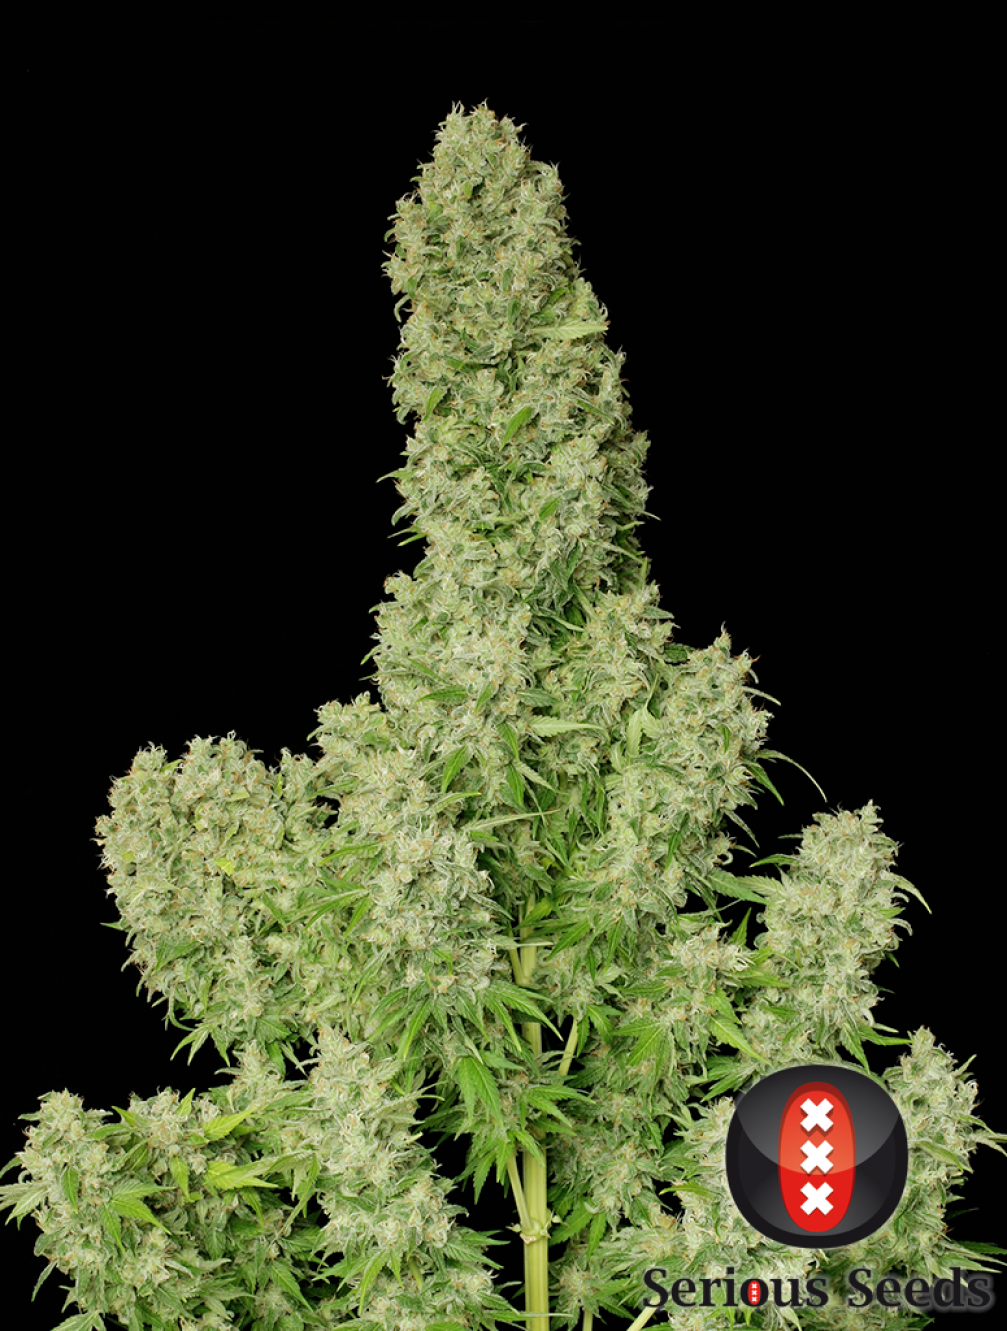 White Russian Cannabis Seeds Serious Seeds